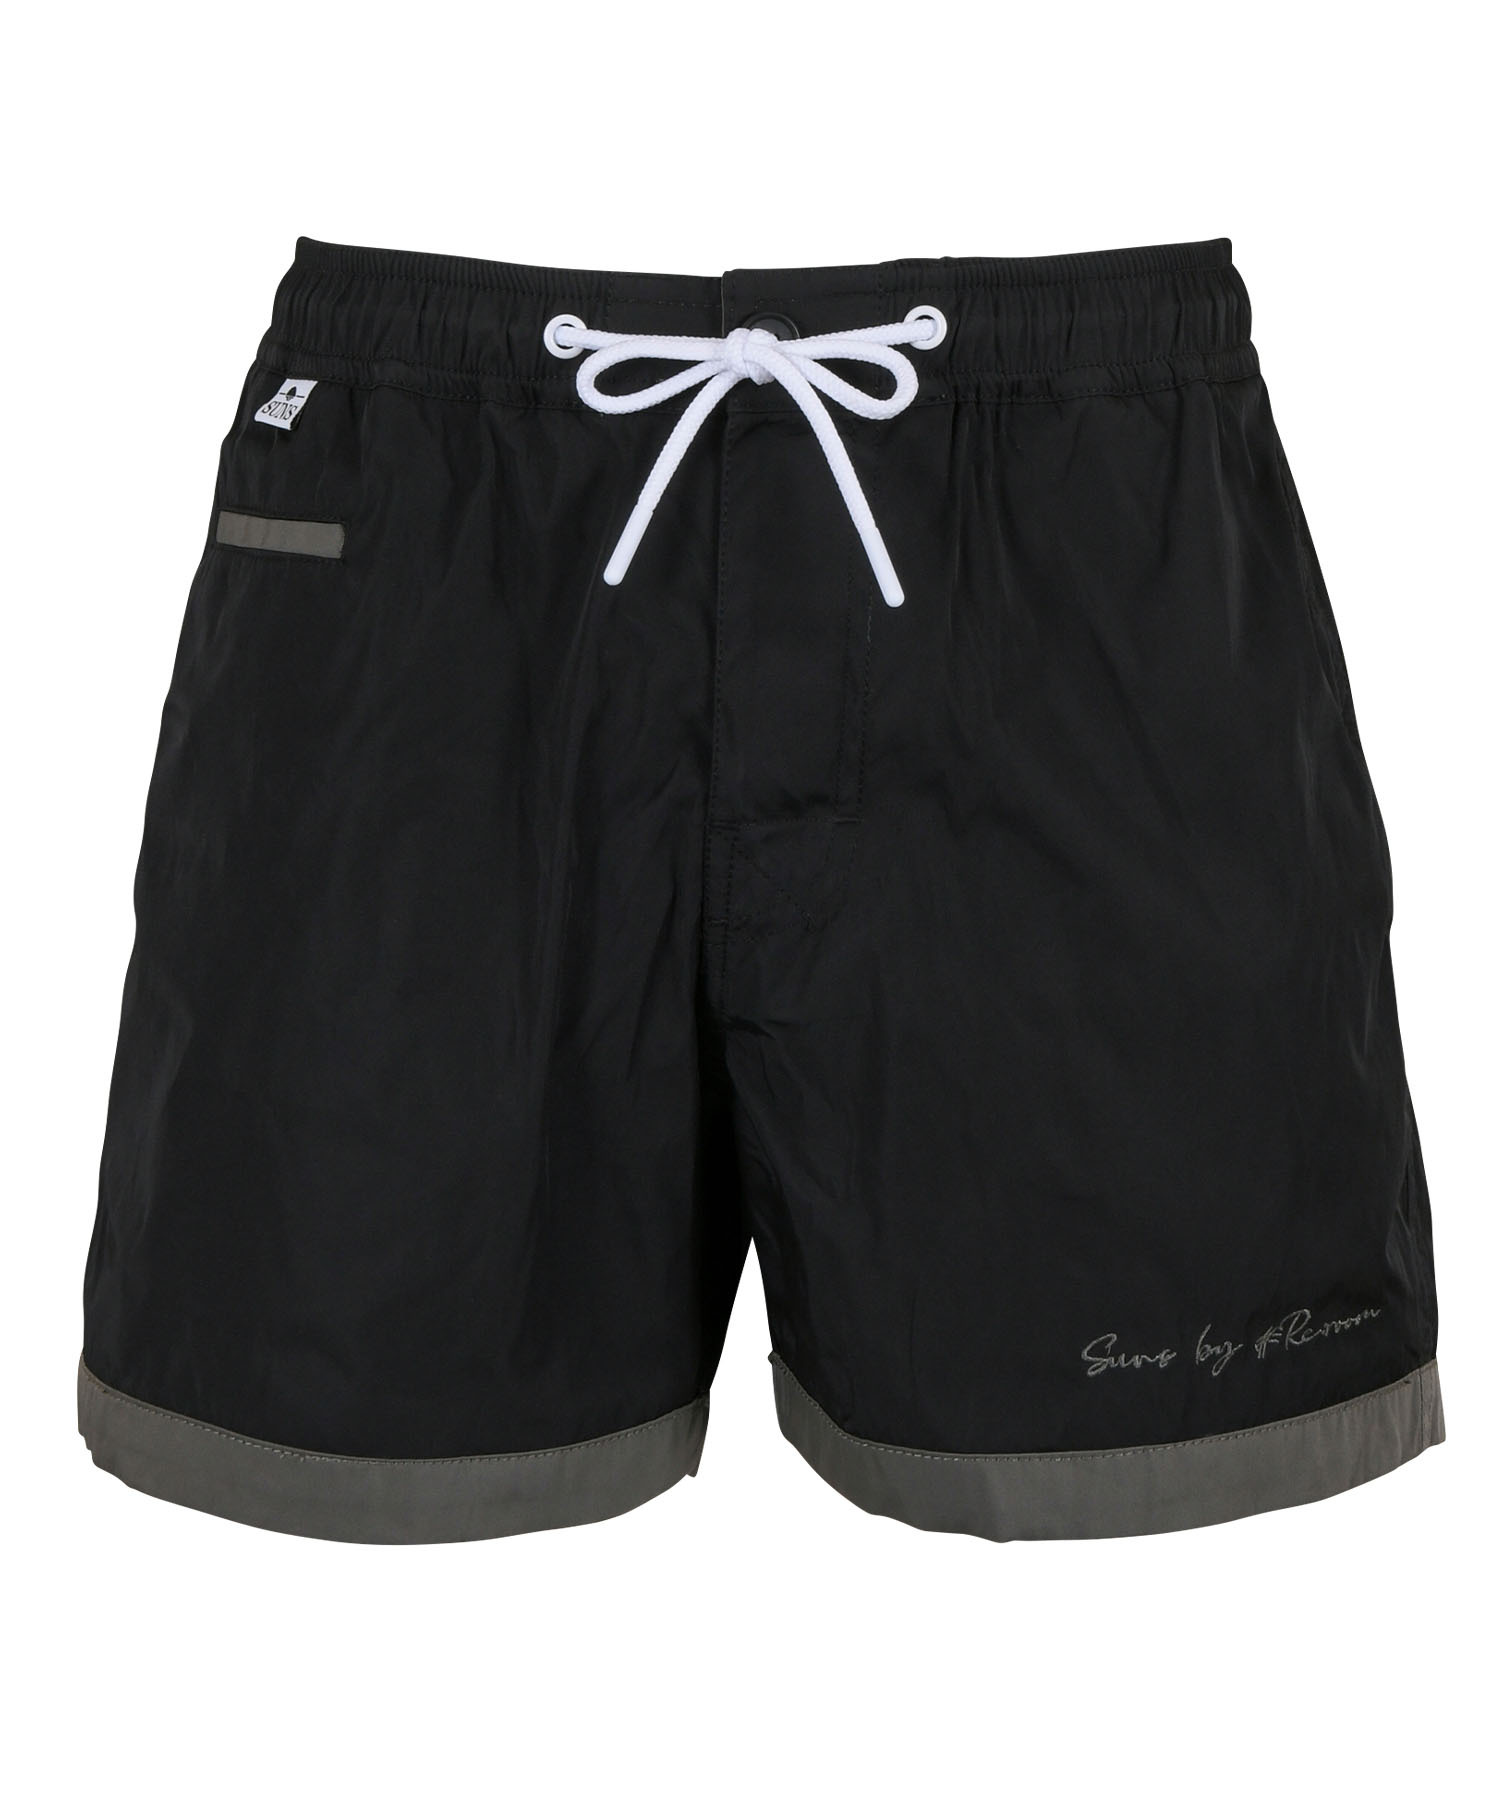 SUNS WFACE LOGO EMBROIDERY BOARD SHORTS[RSW045]